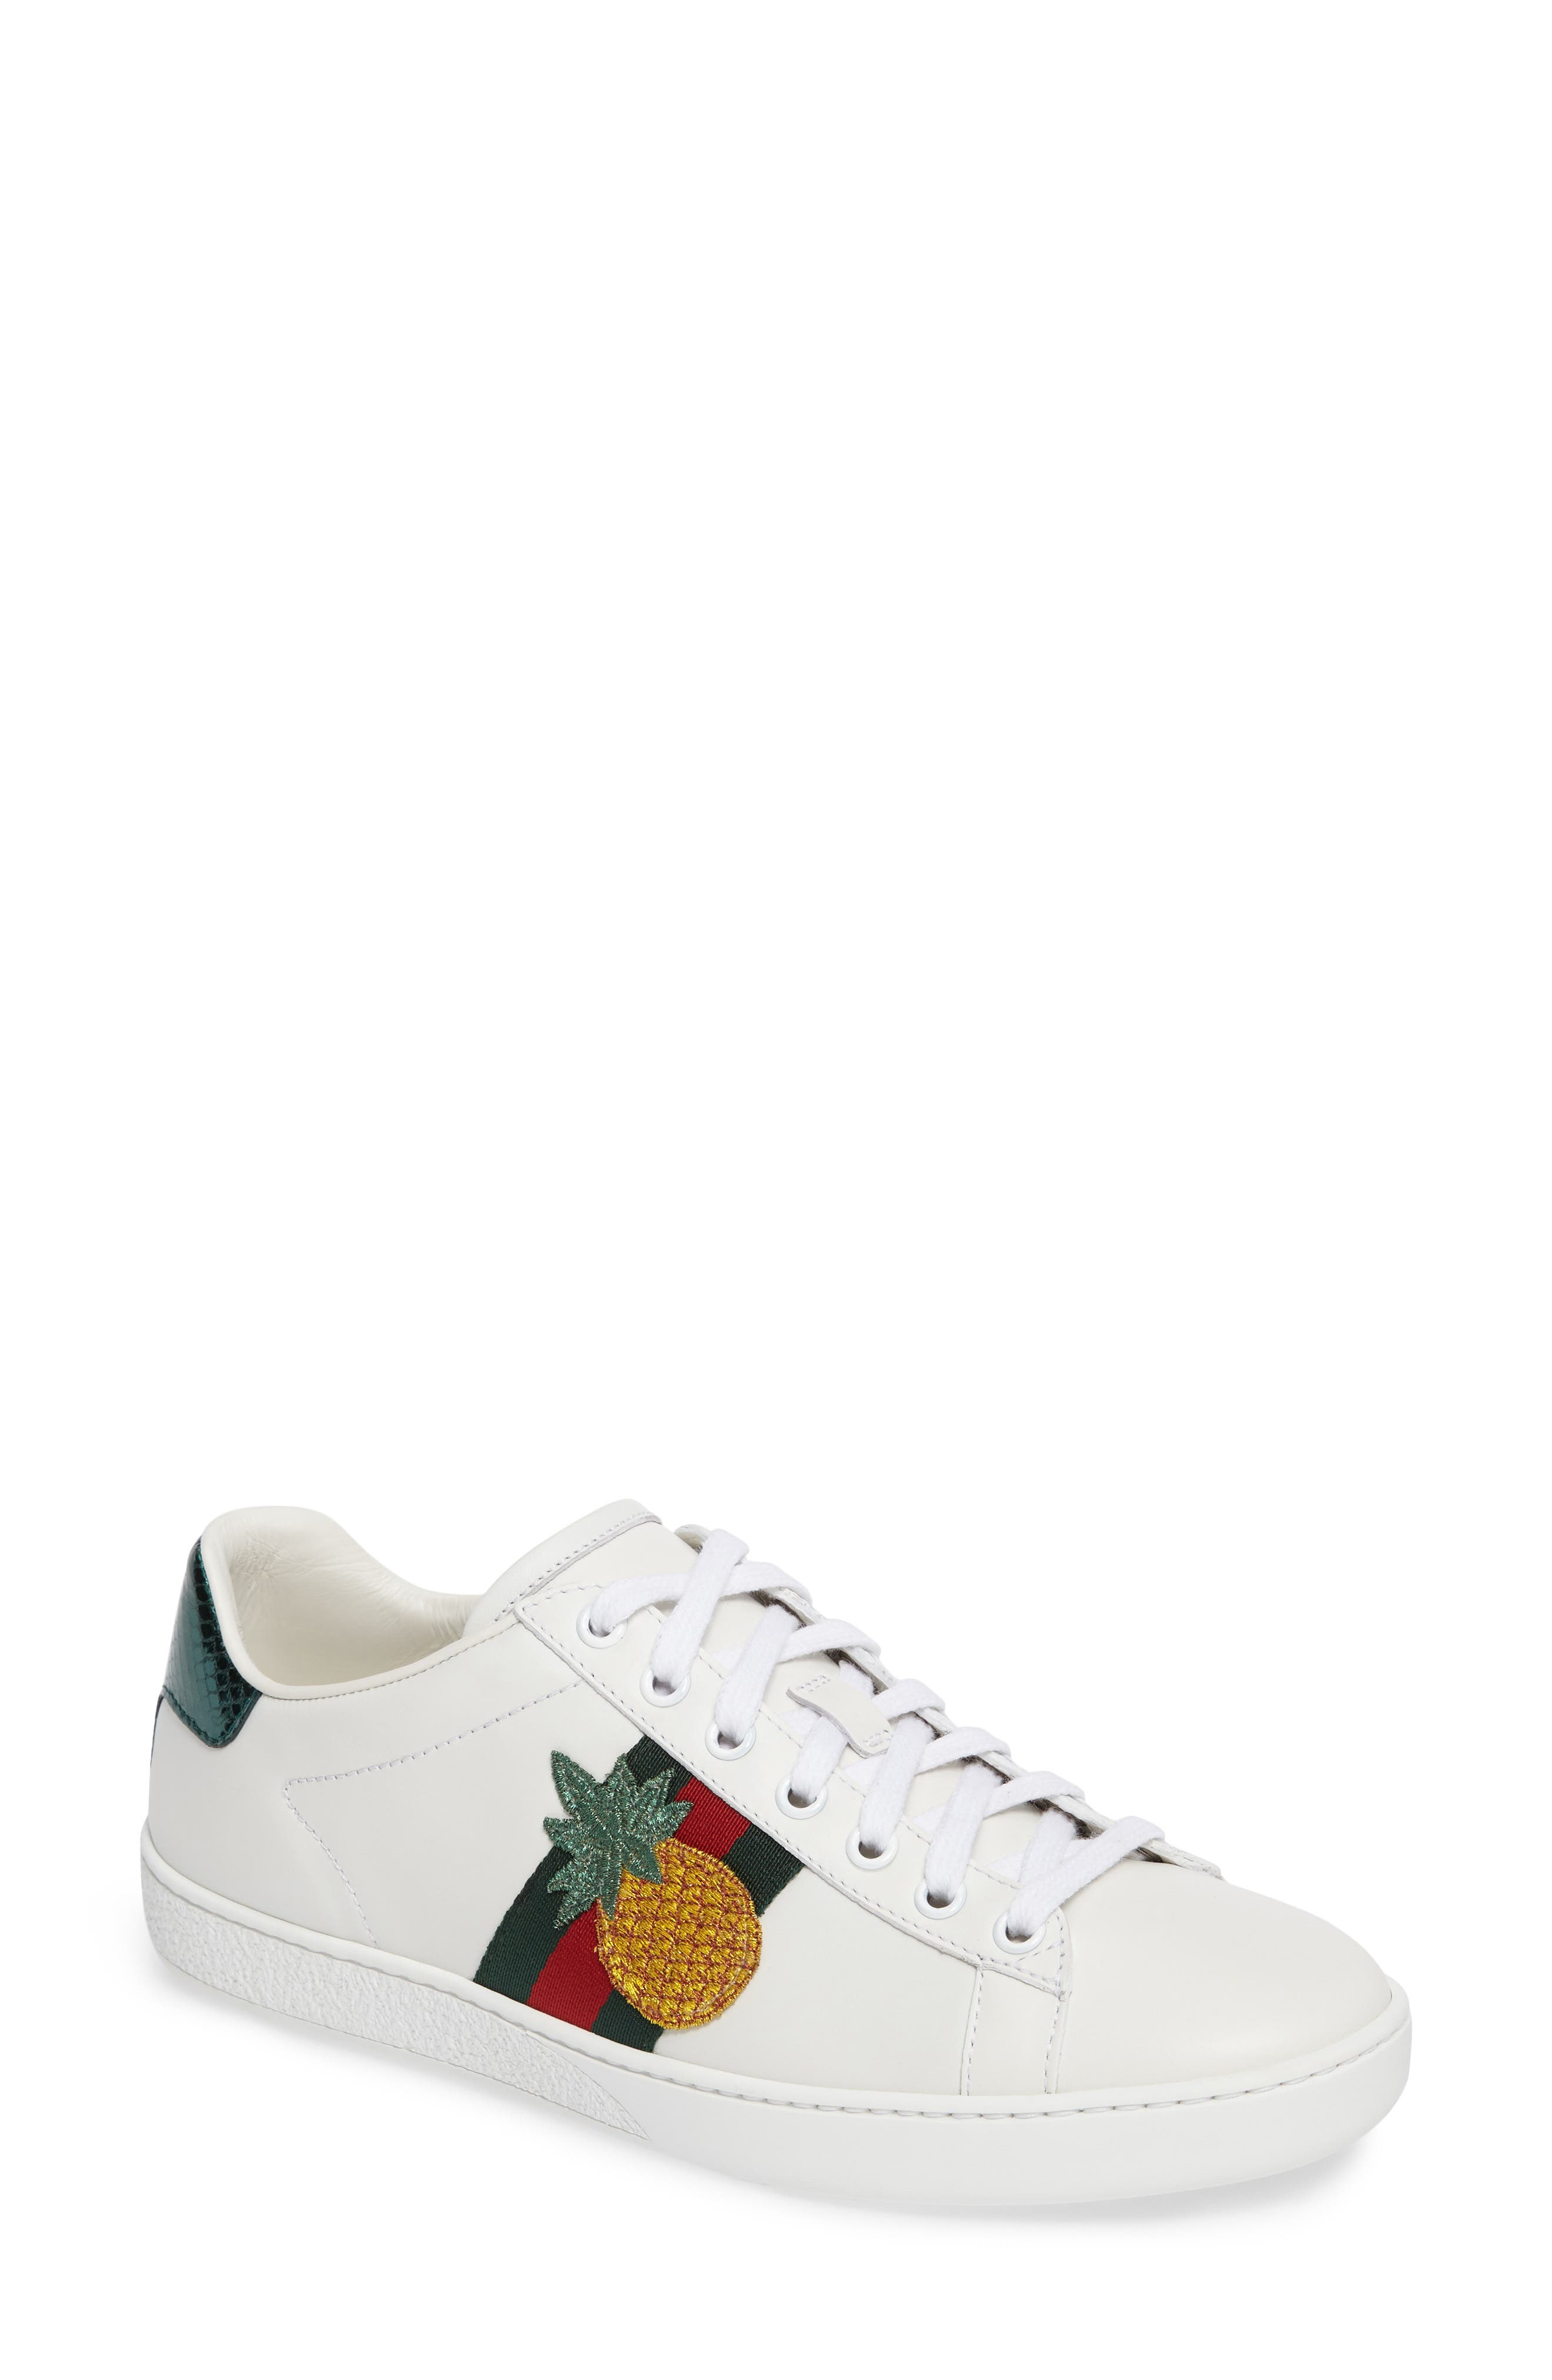 Gucci Pineapple Ace Sneakers uoVrQ